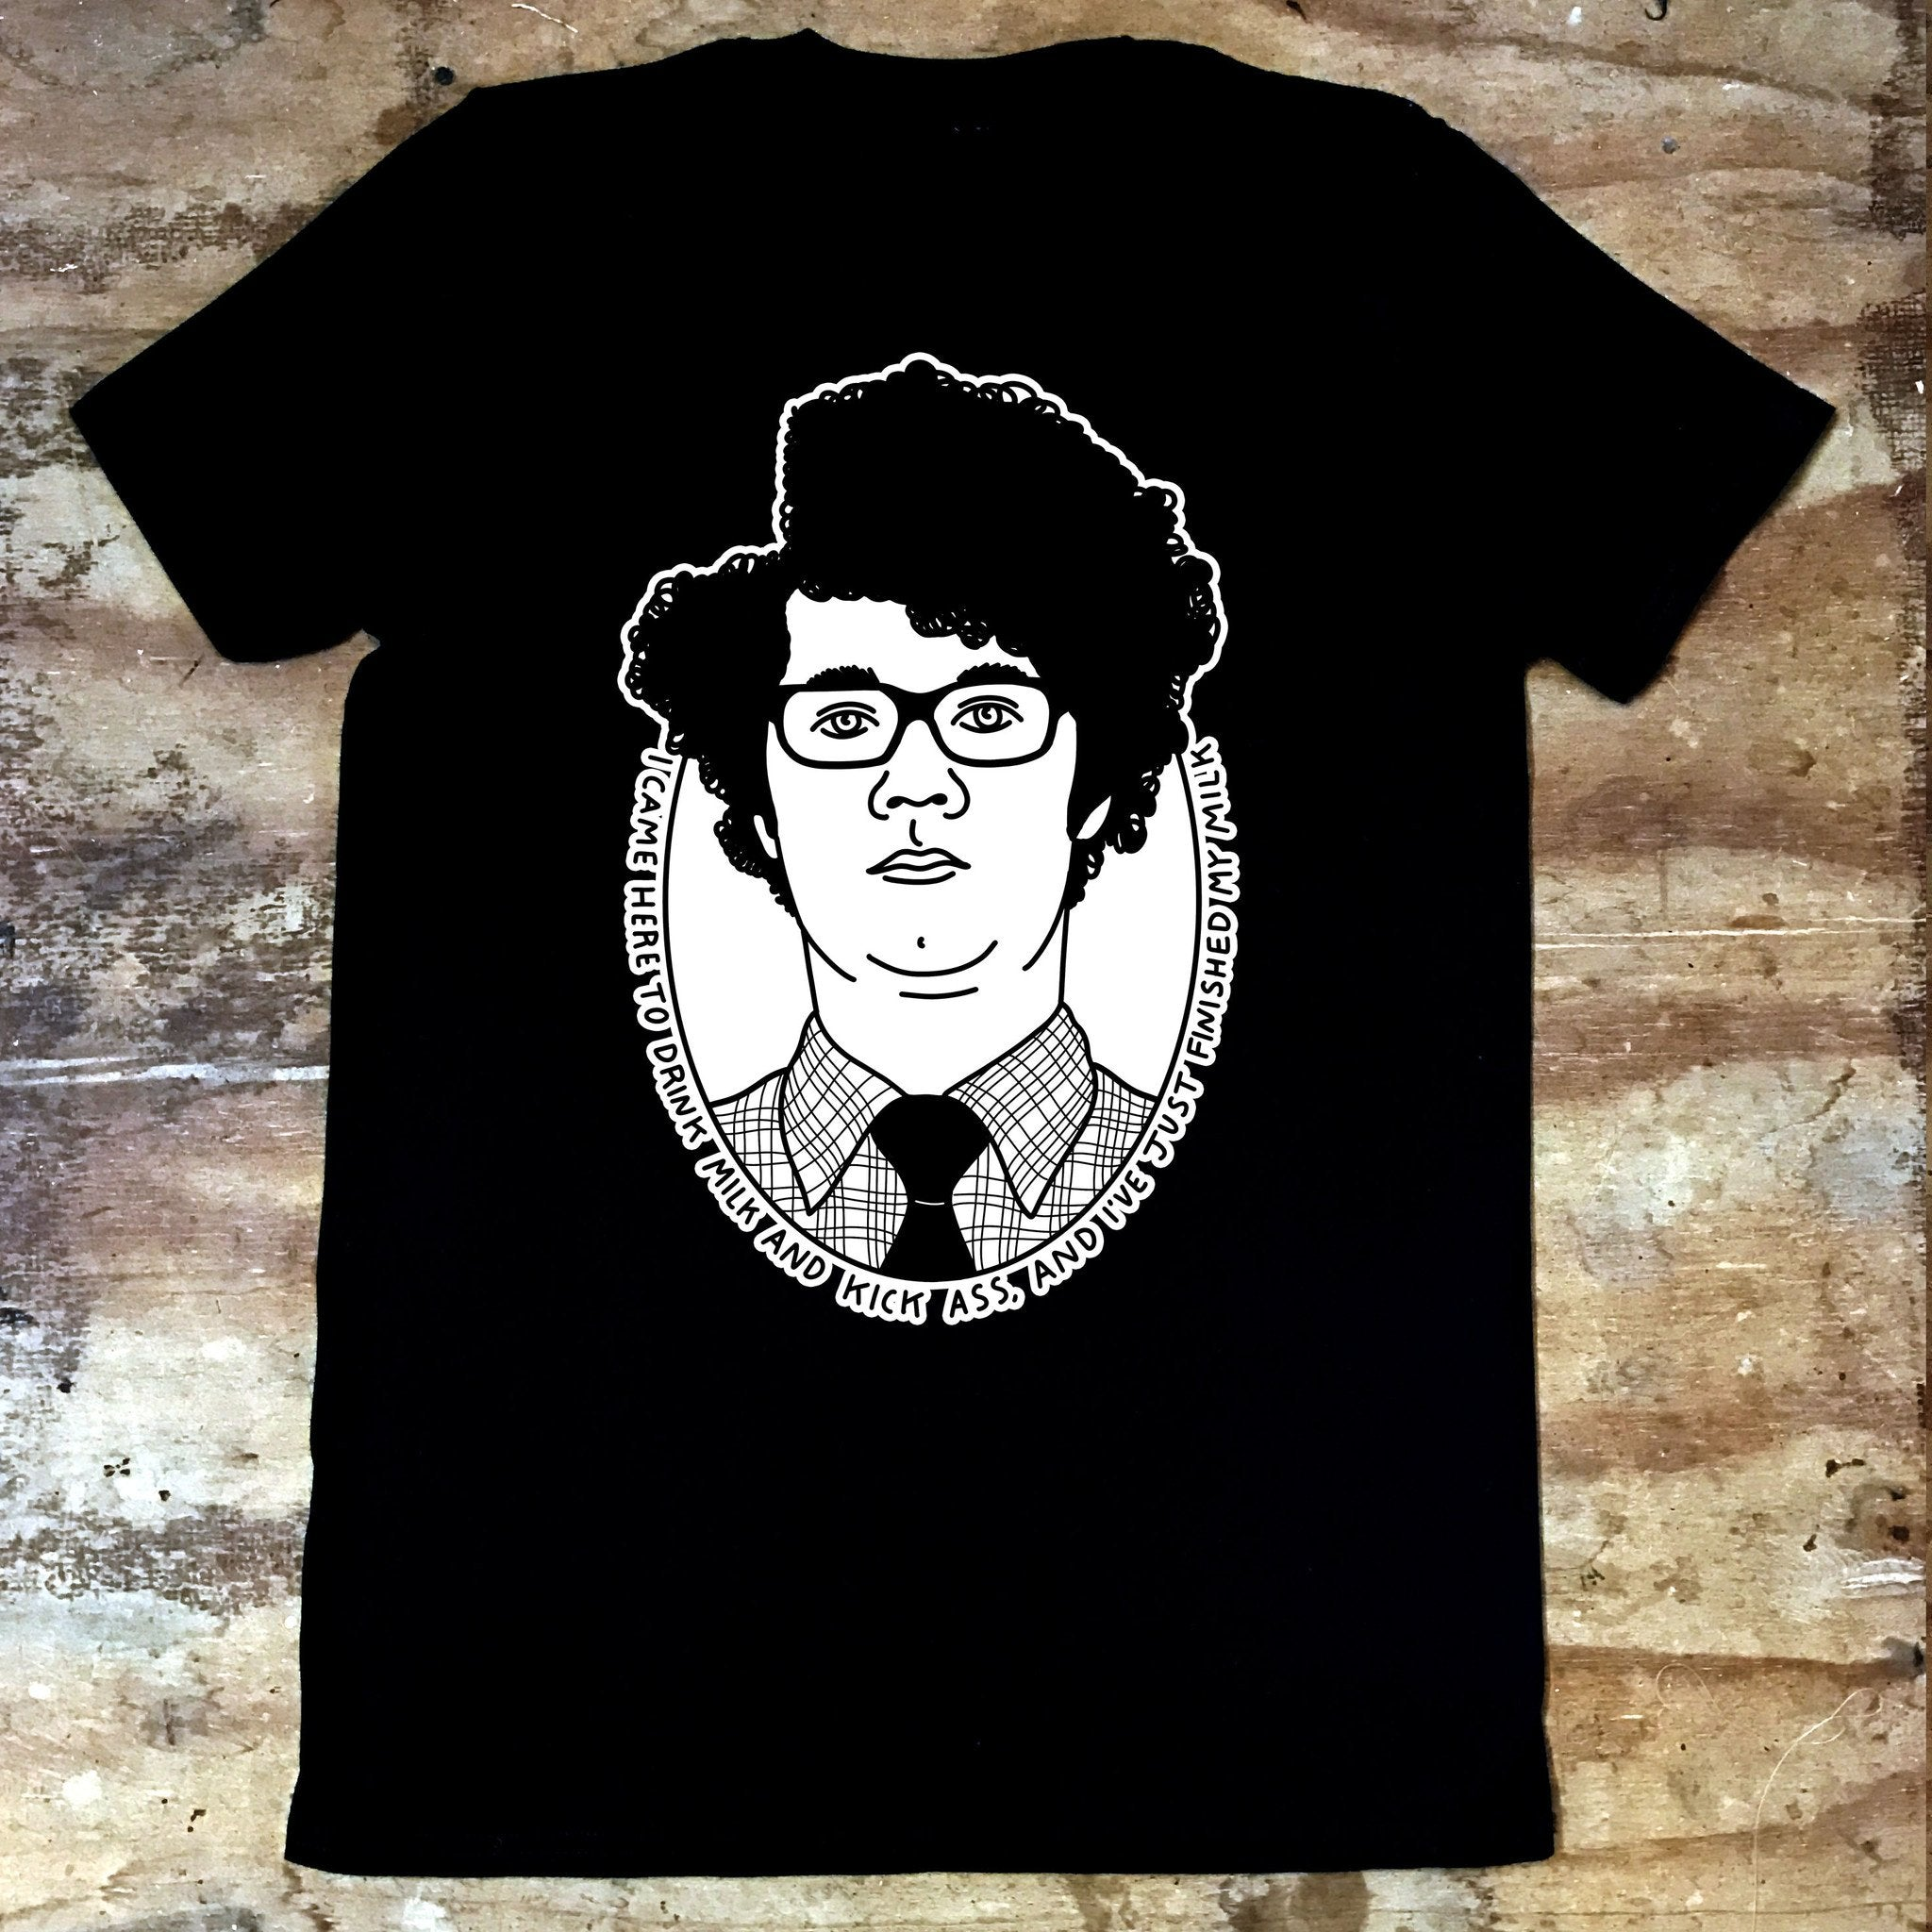 IT Crowd - Moss - I Came Here to Drink Milk - Jiggle Apparel